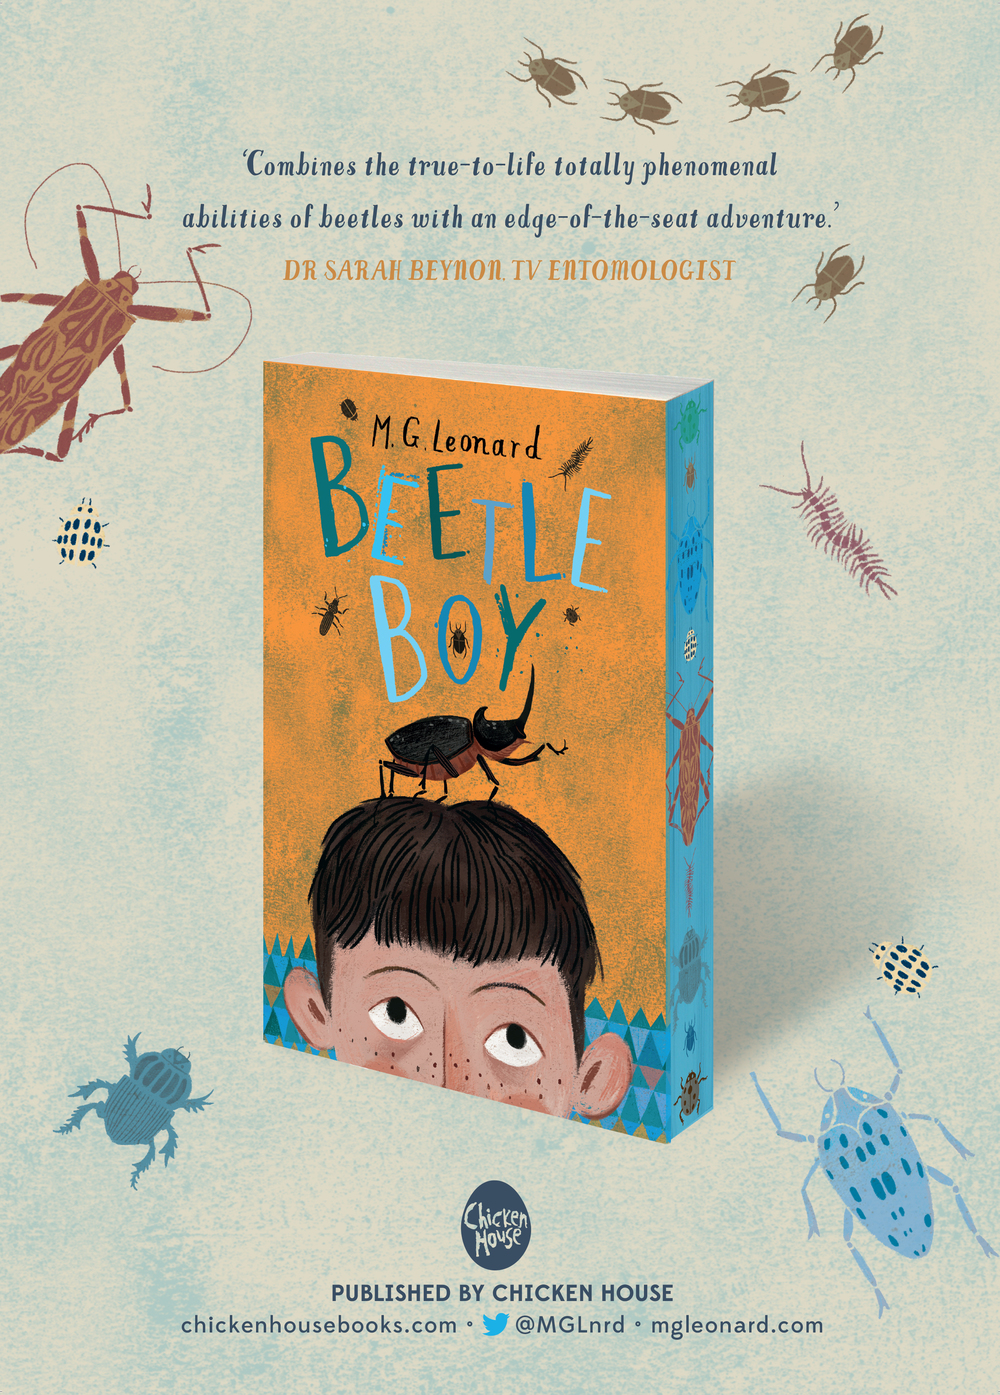 Beetle Boy poster featuring illustration by Julia Sarda.